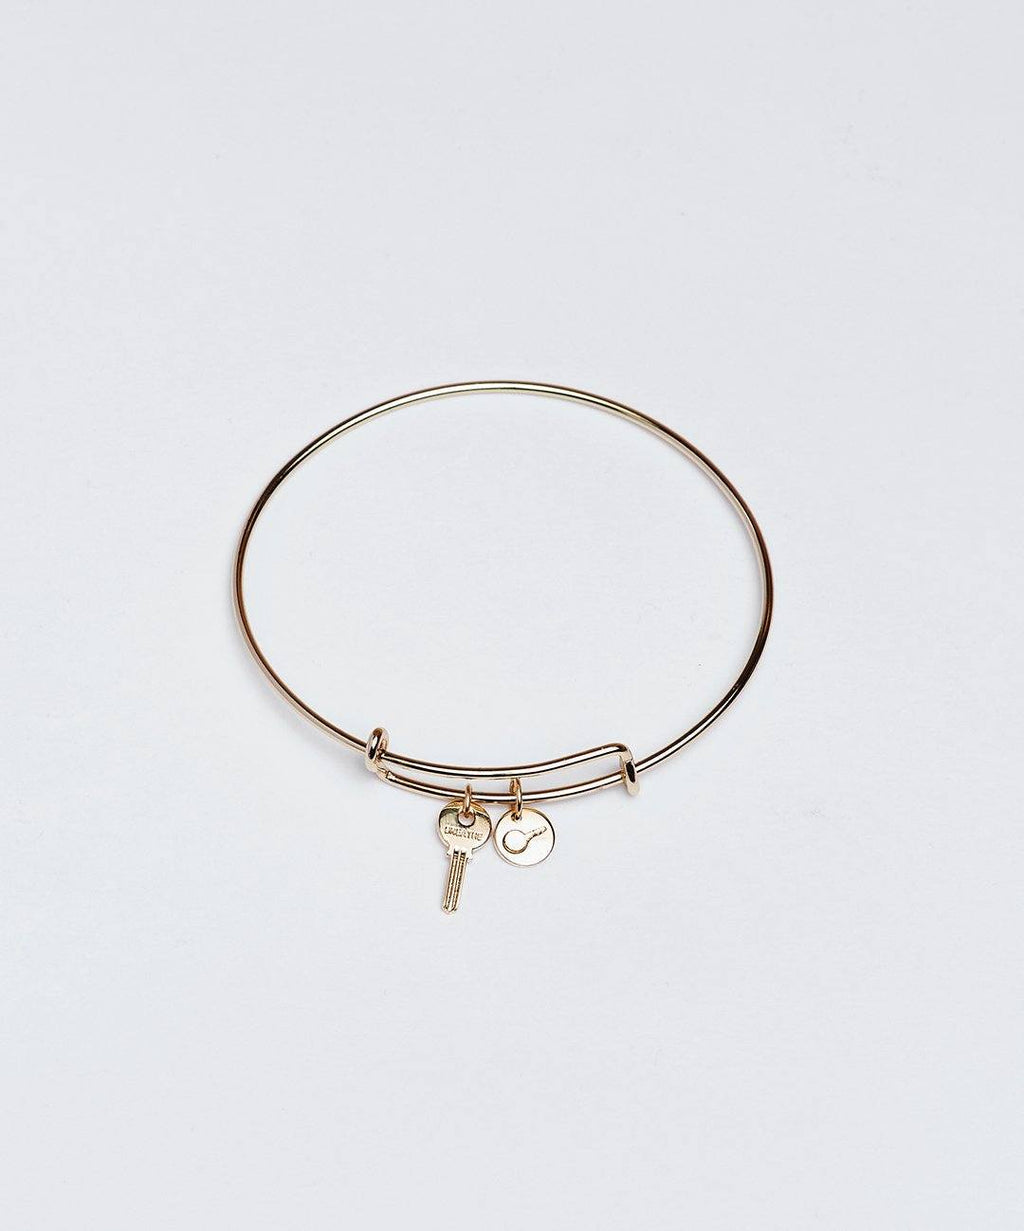 Petite Key Bangle Bracelet